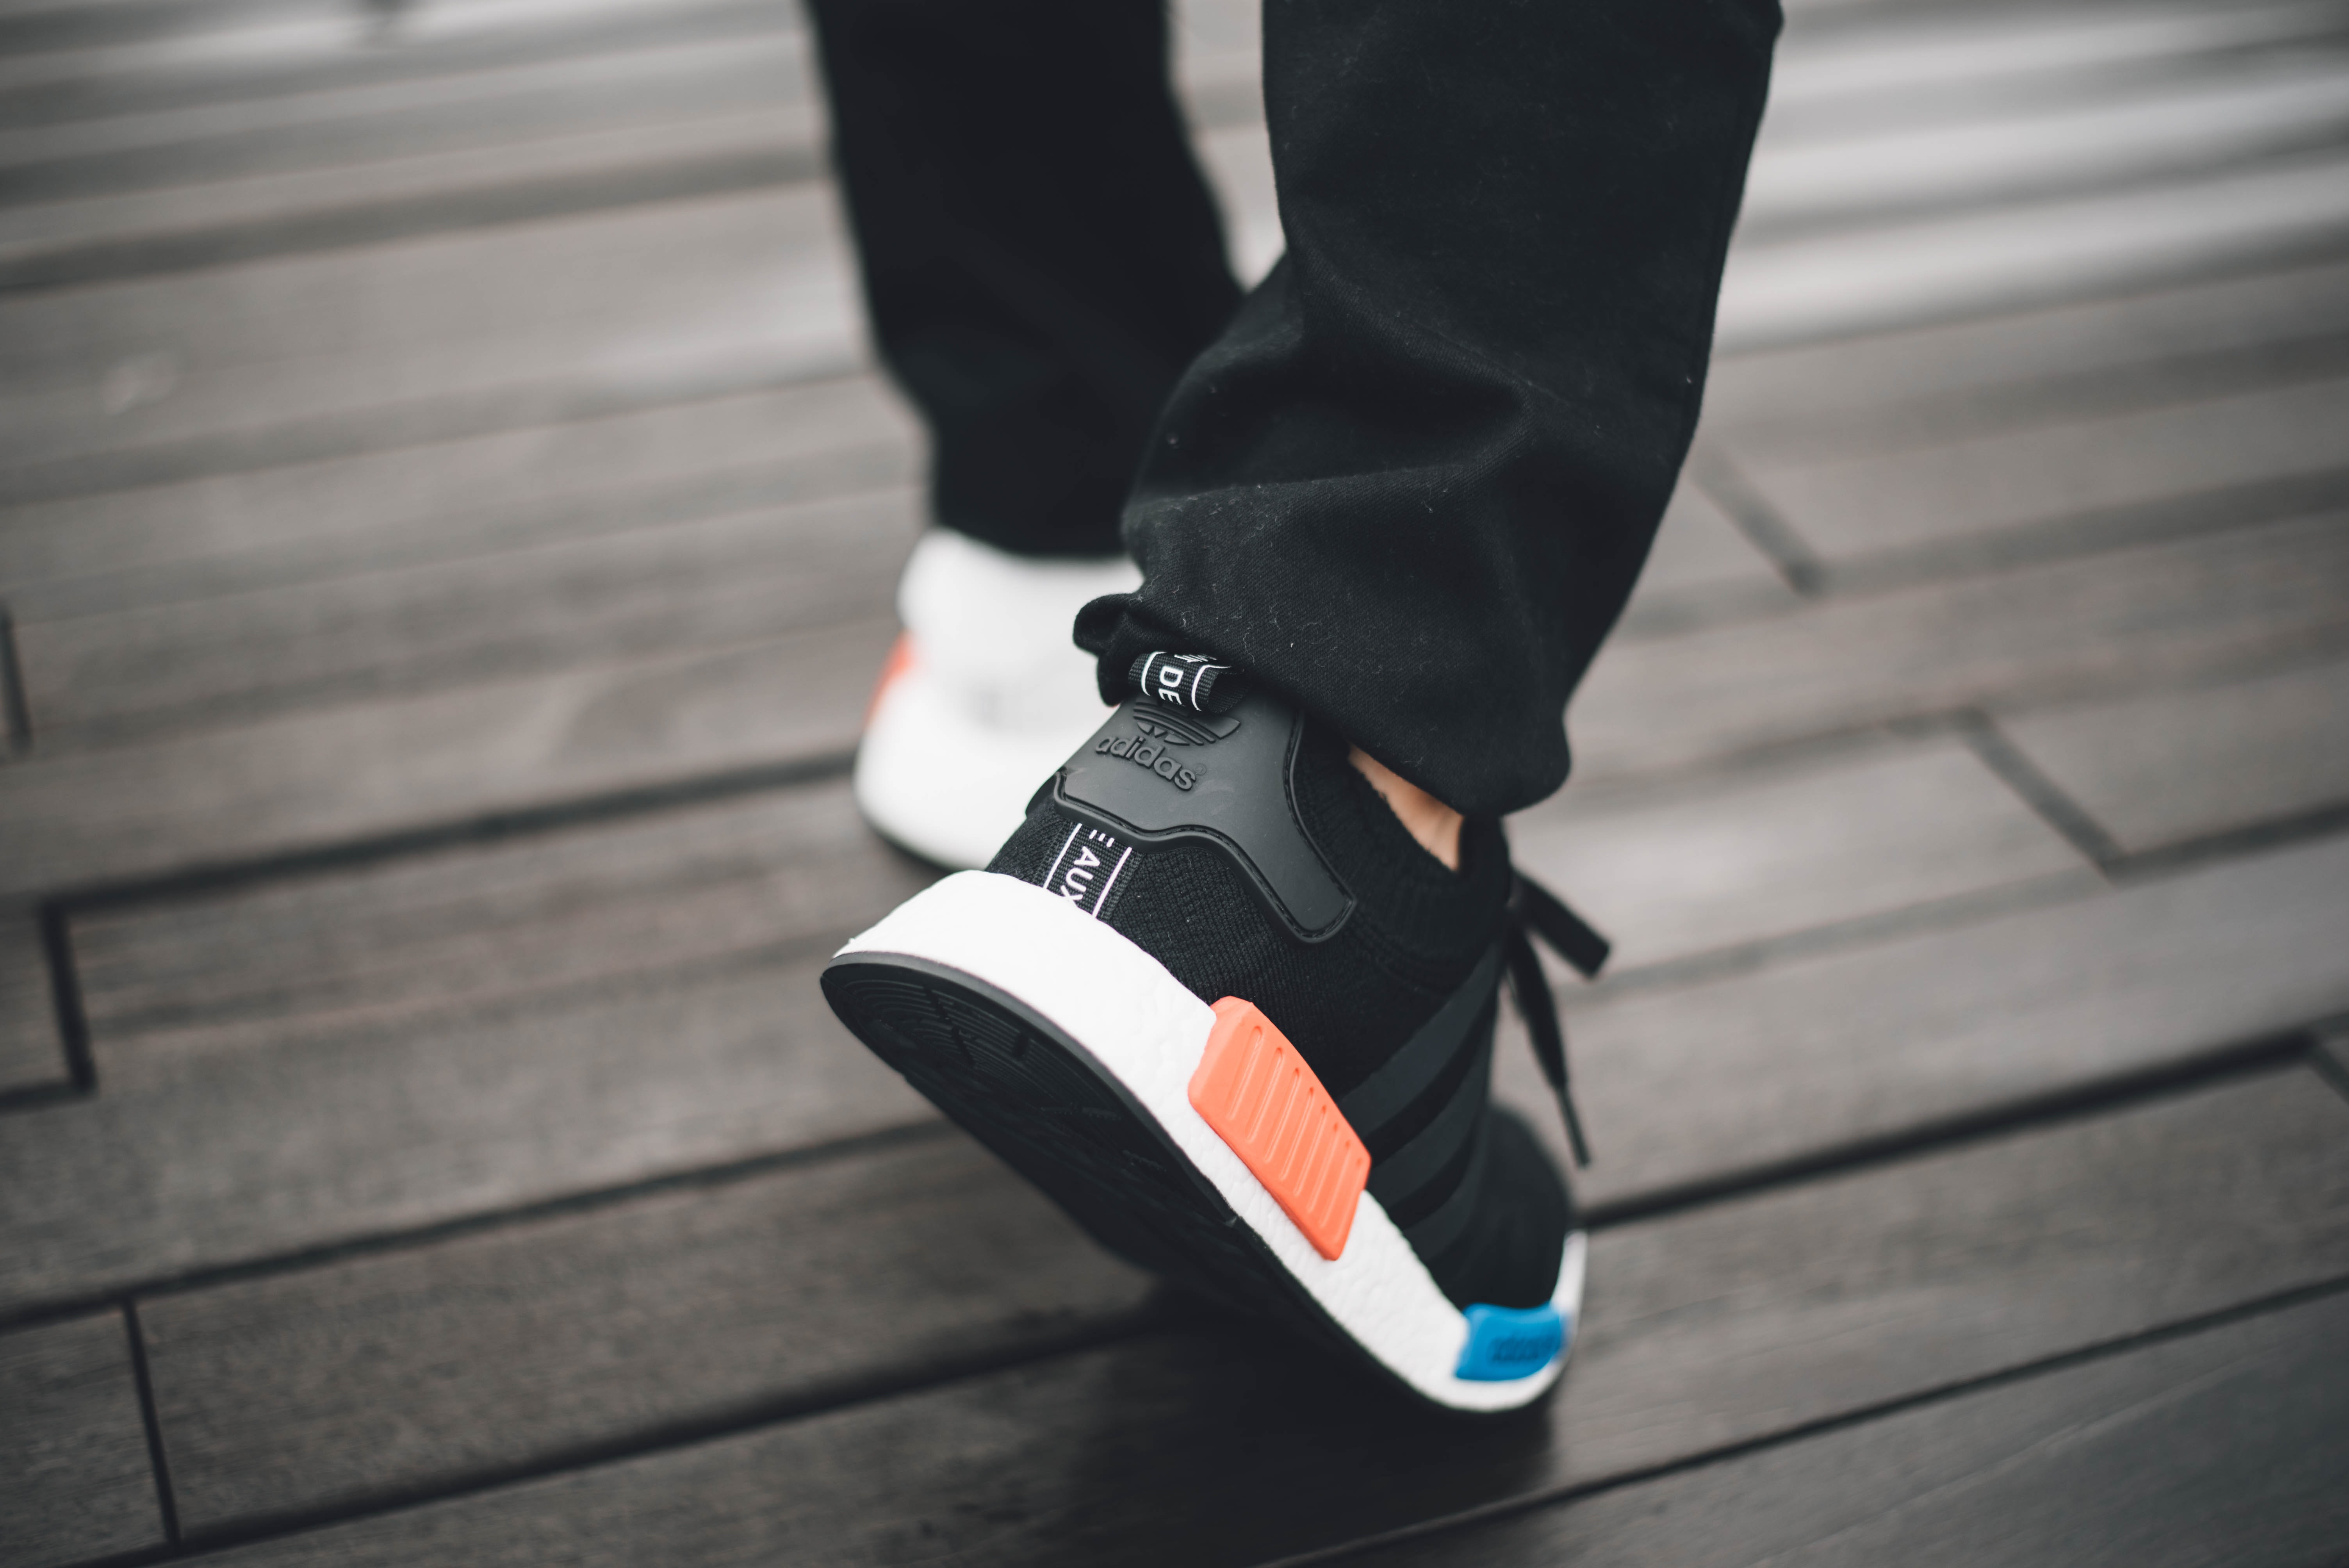 best sneakers for all day standing